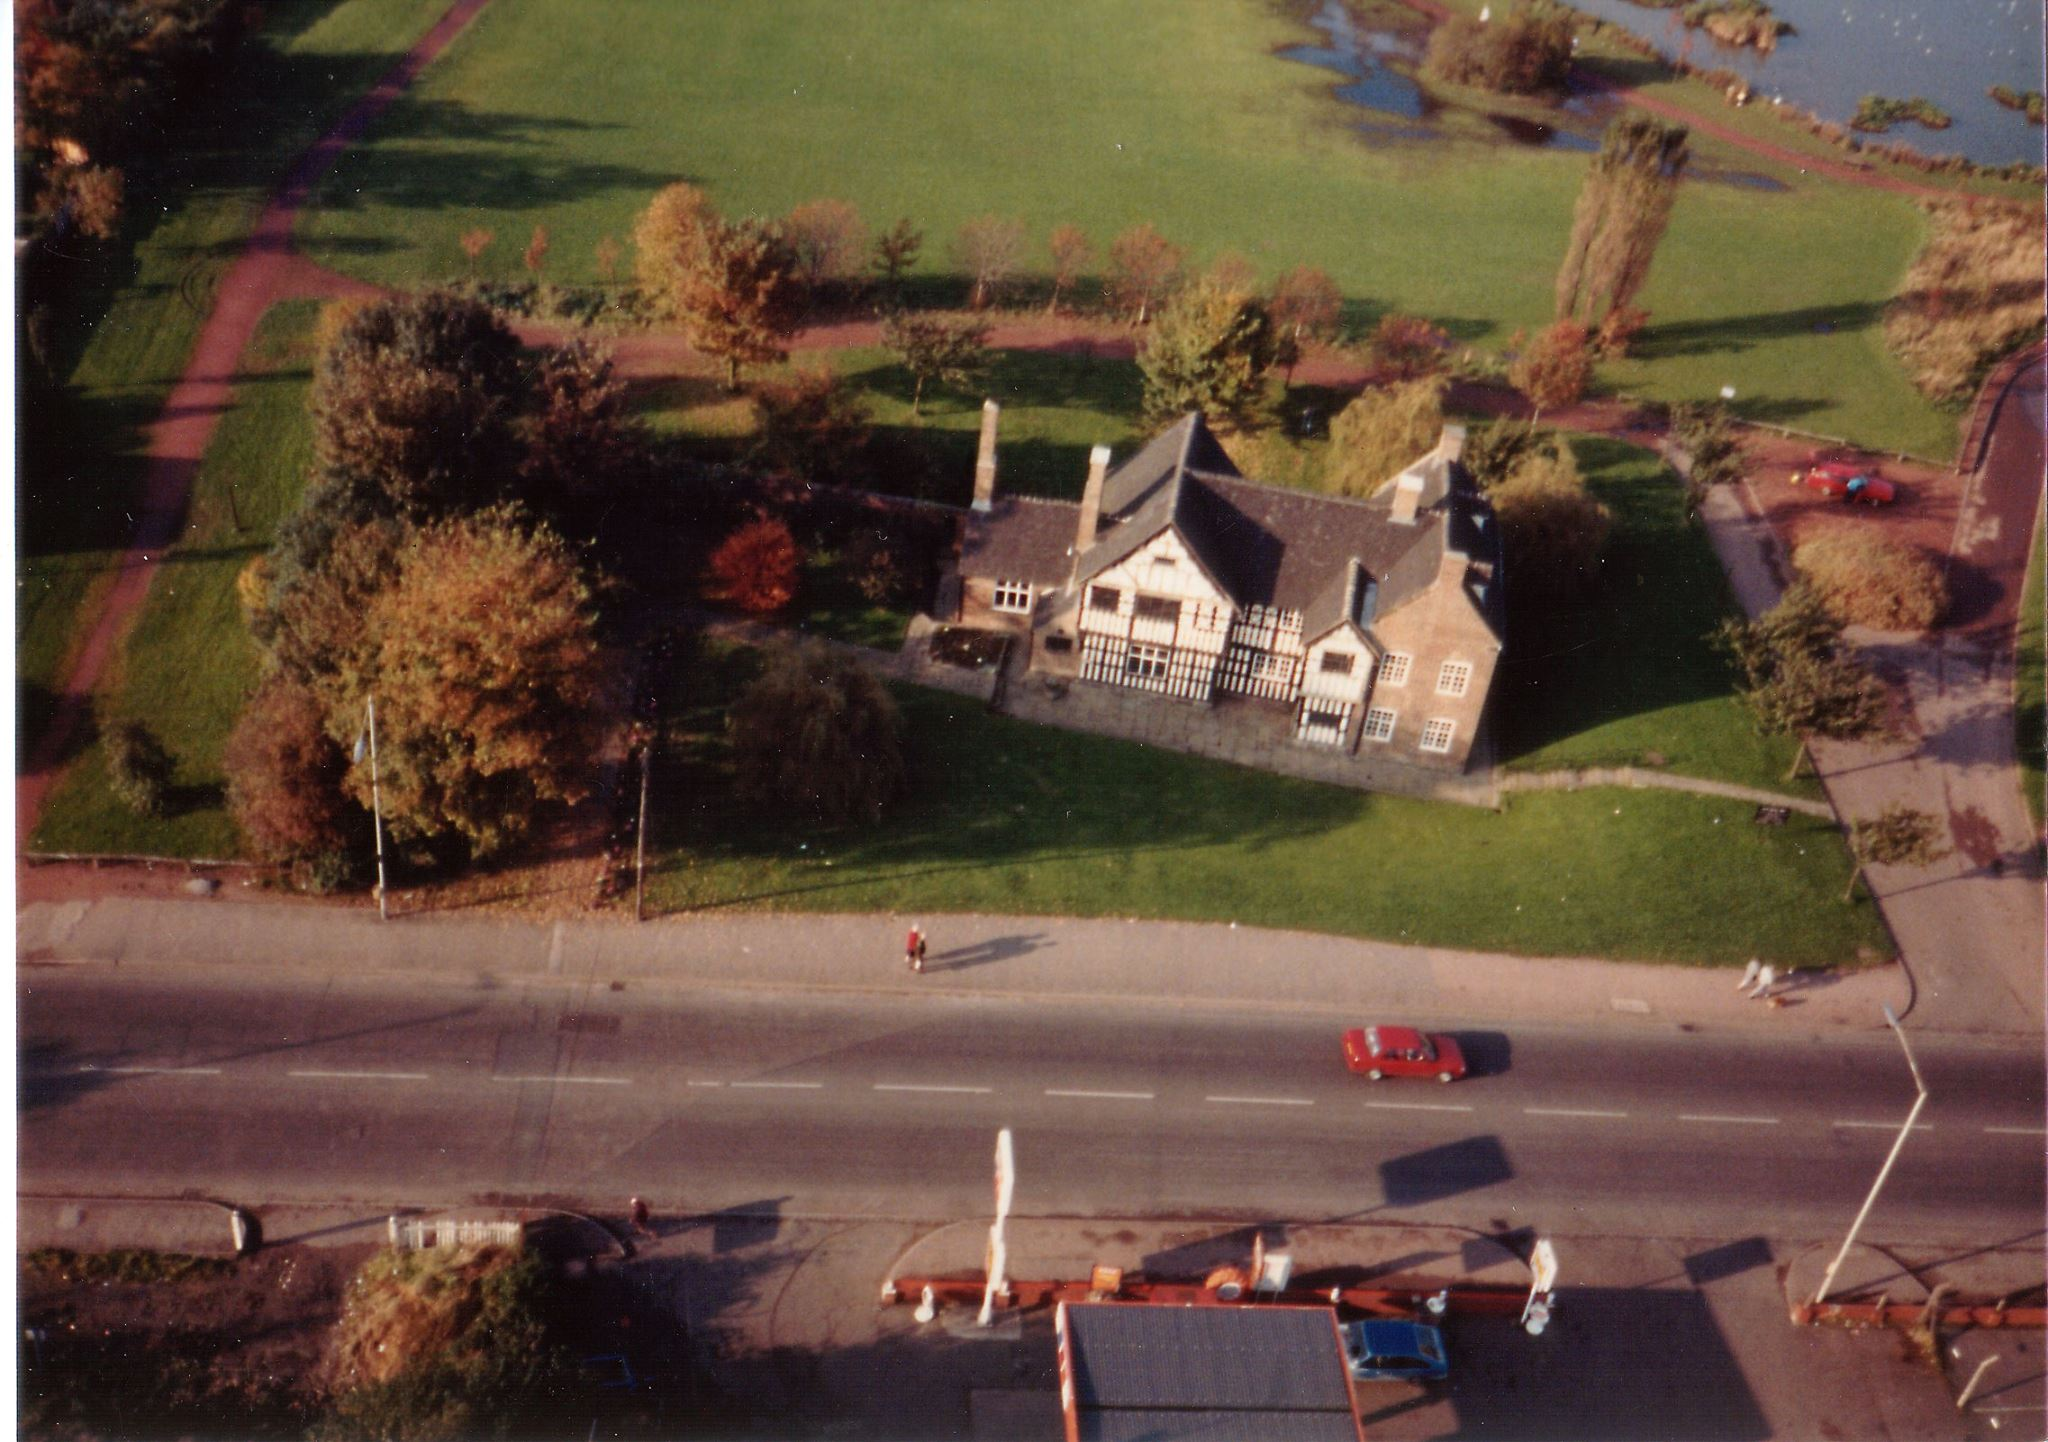 Aerial Photographs of Ford Green & Bradeley